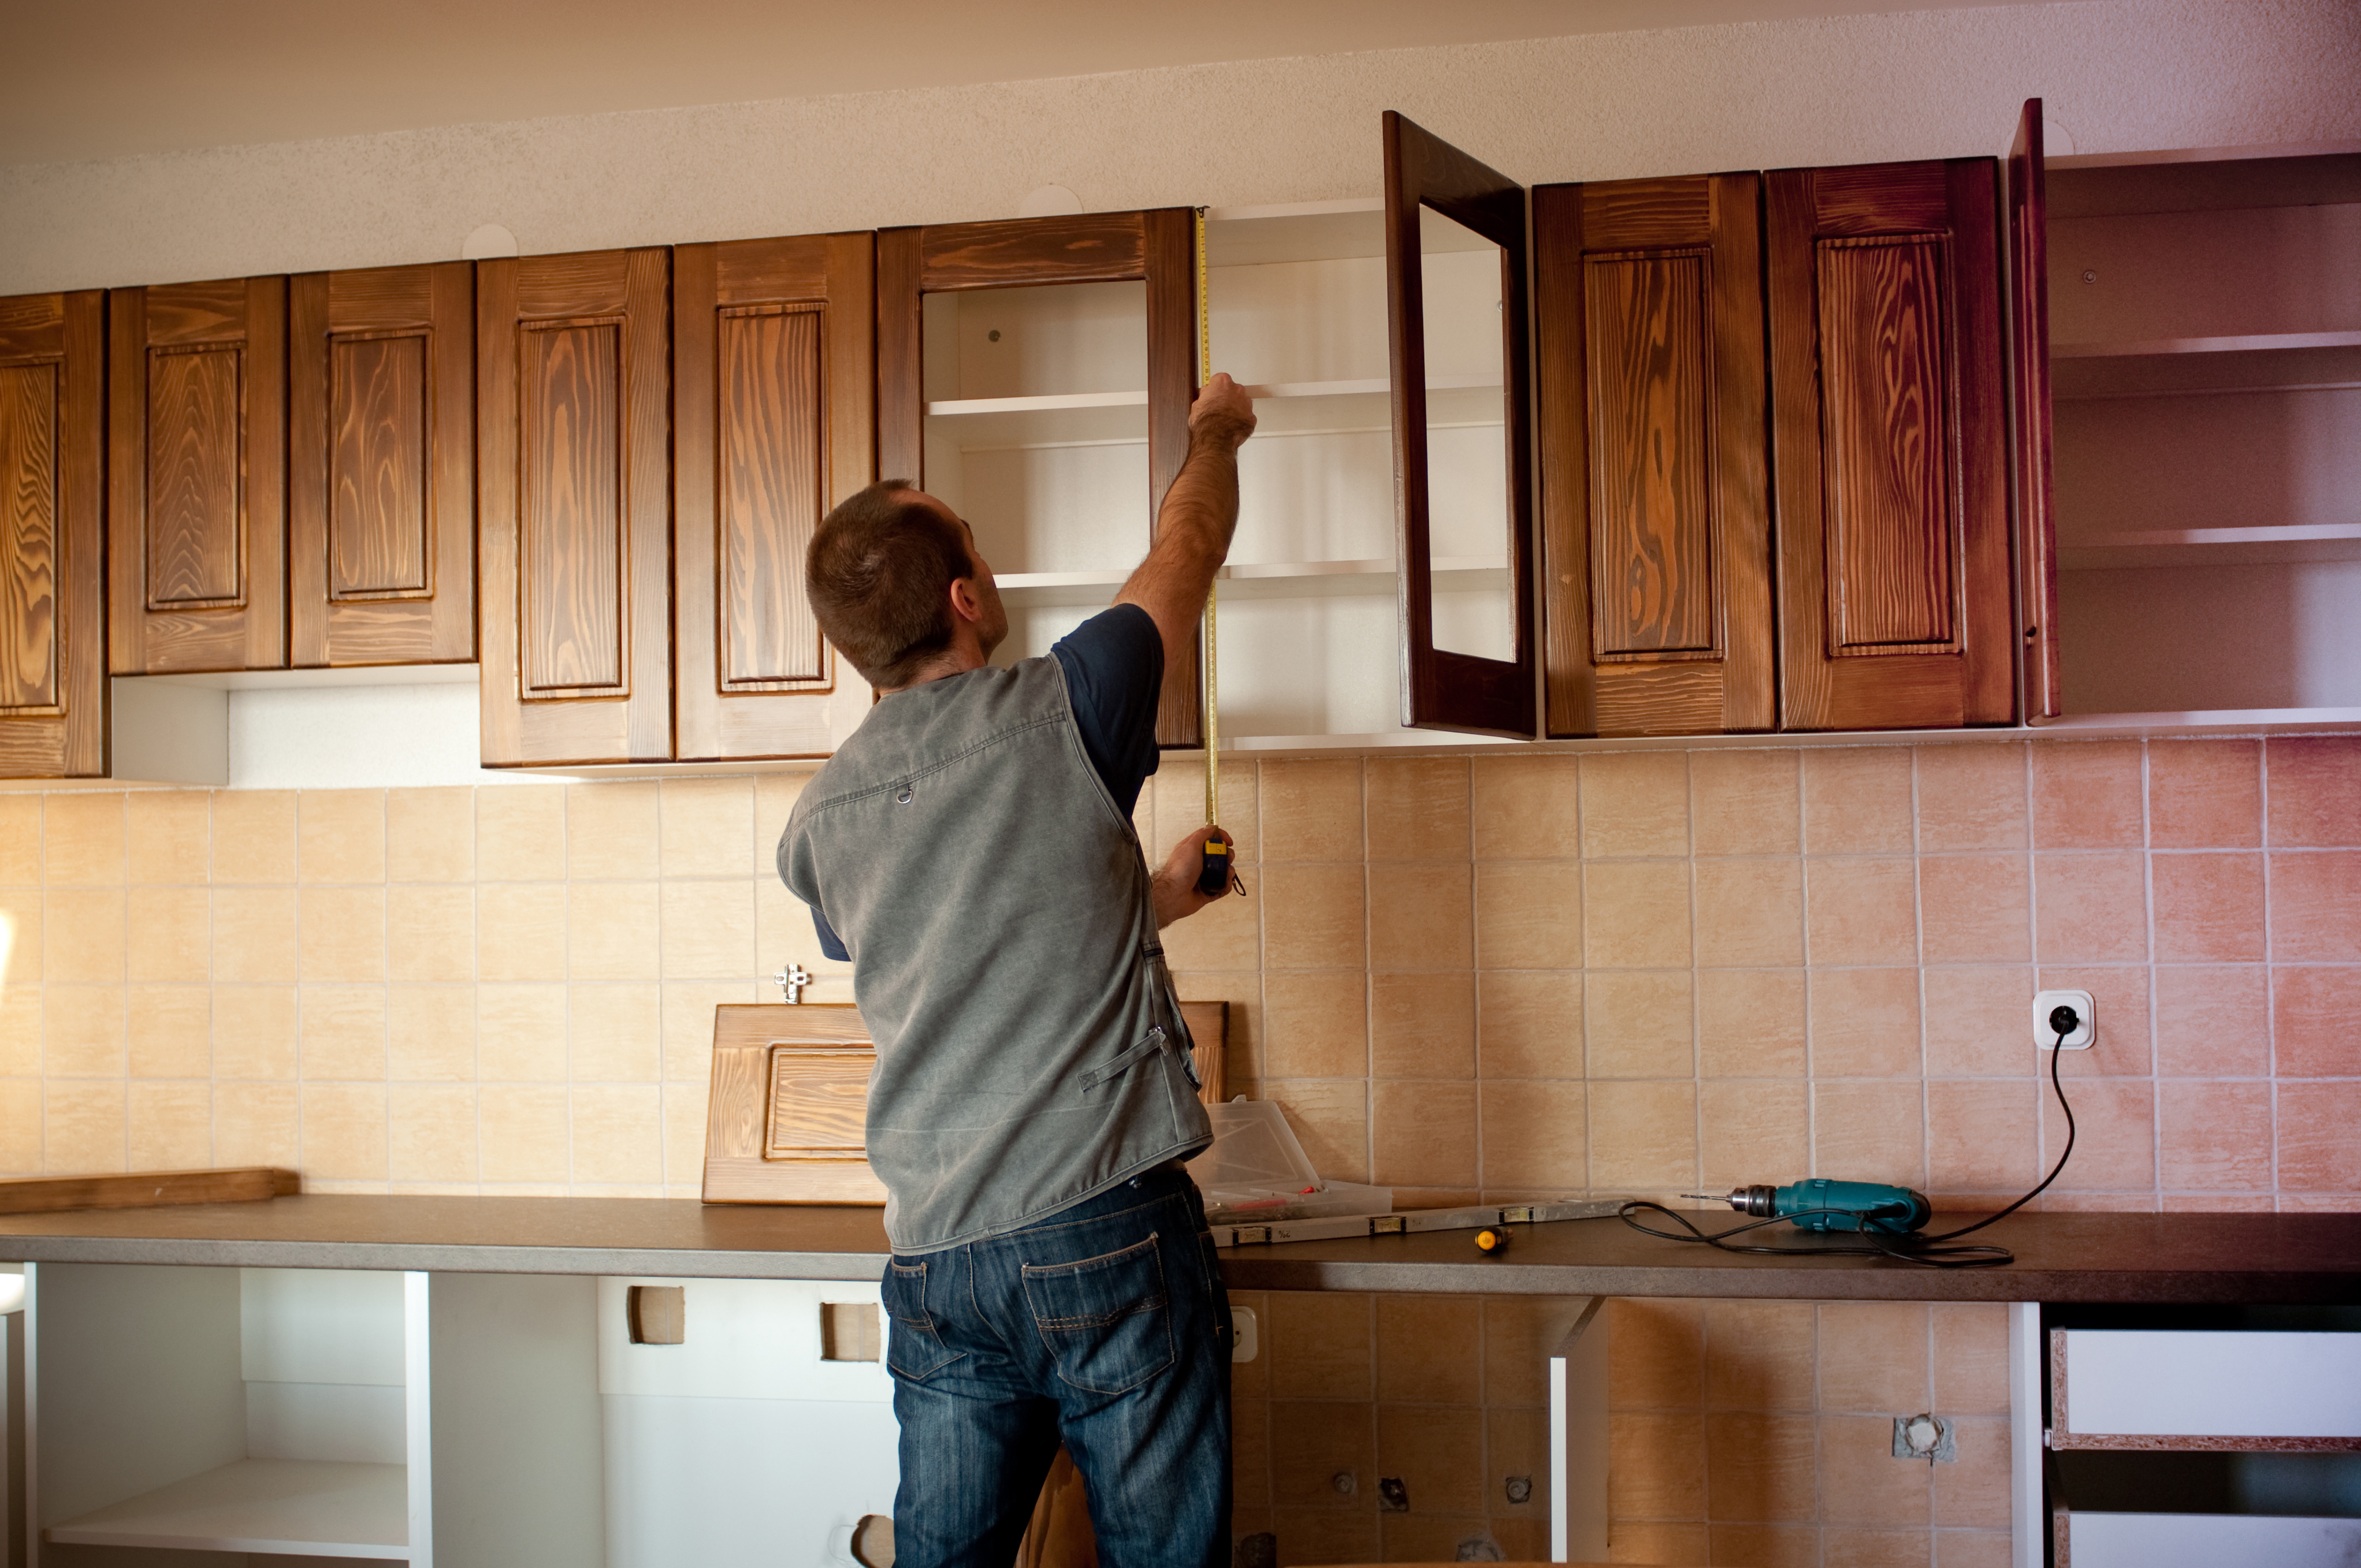 Home Remodeling Chicago Remodeling Contractors Chicago - Remodeling contractors chicago